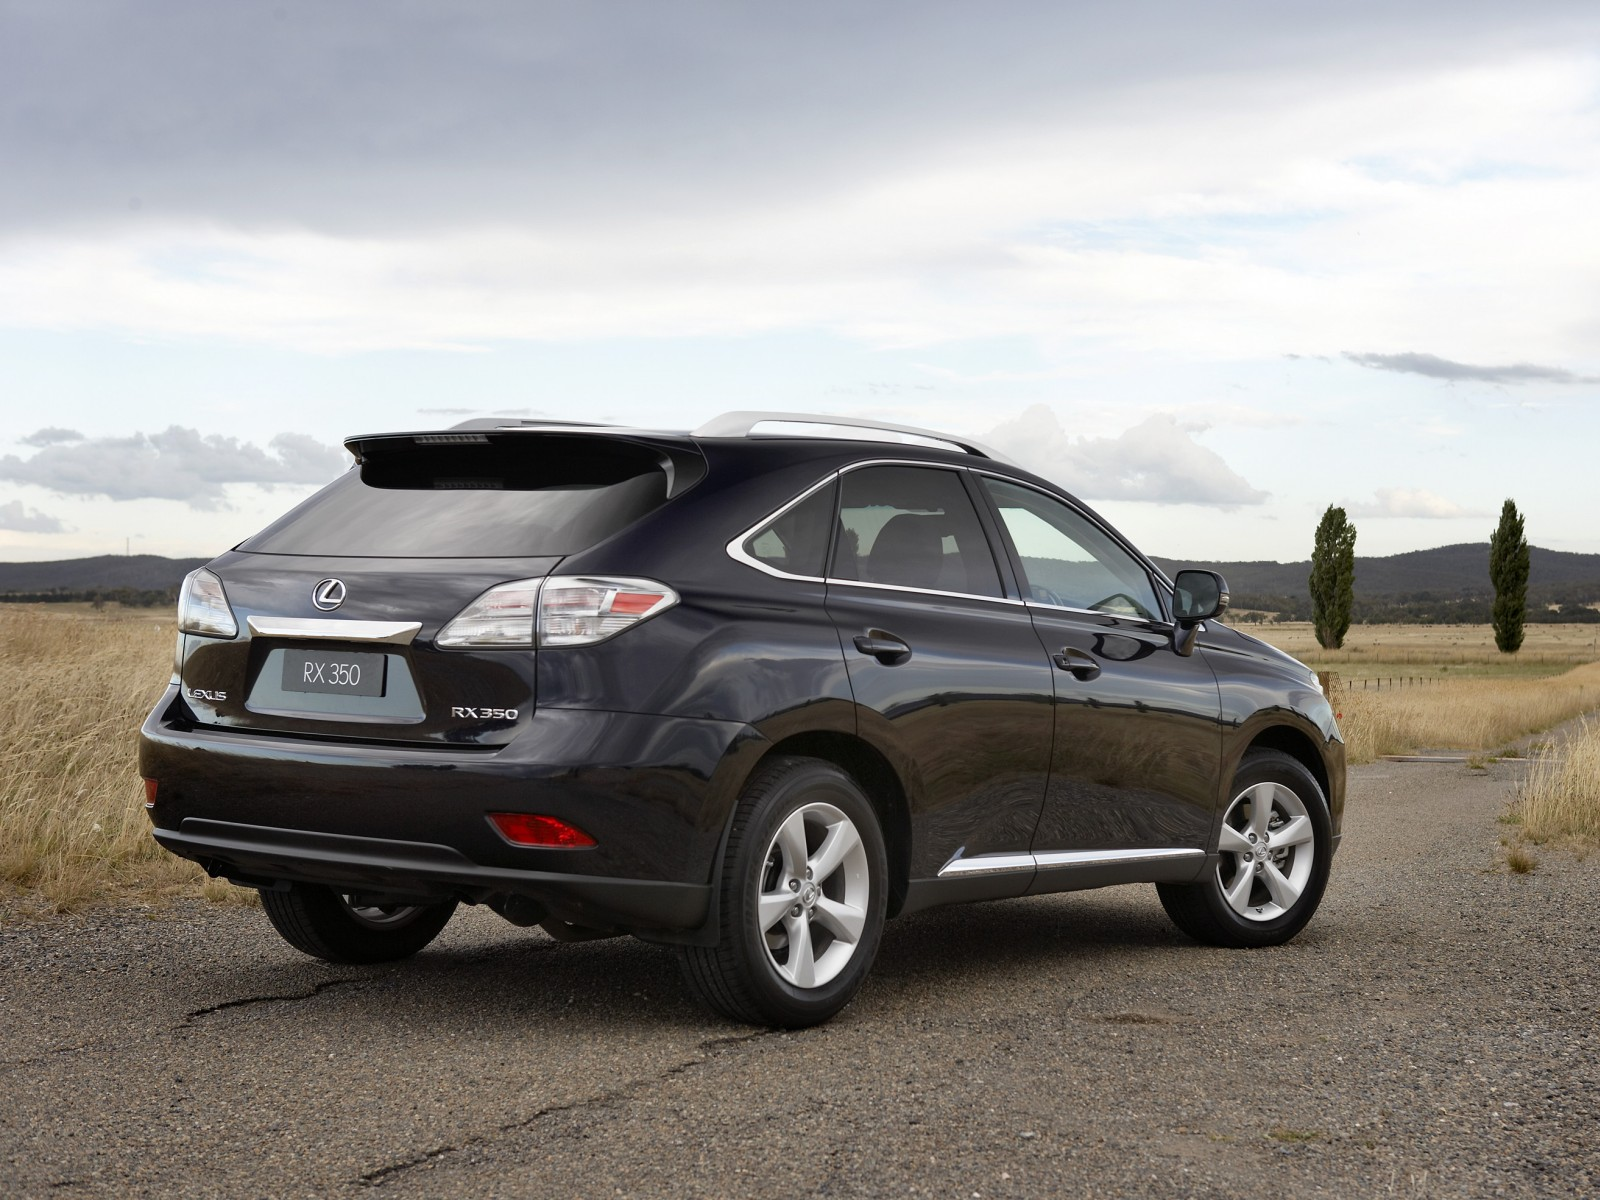 lexus rx 350 2009 technical specifications interior and. Black Bedroom Furniture Sets. Home Design Ideas